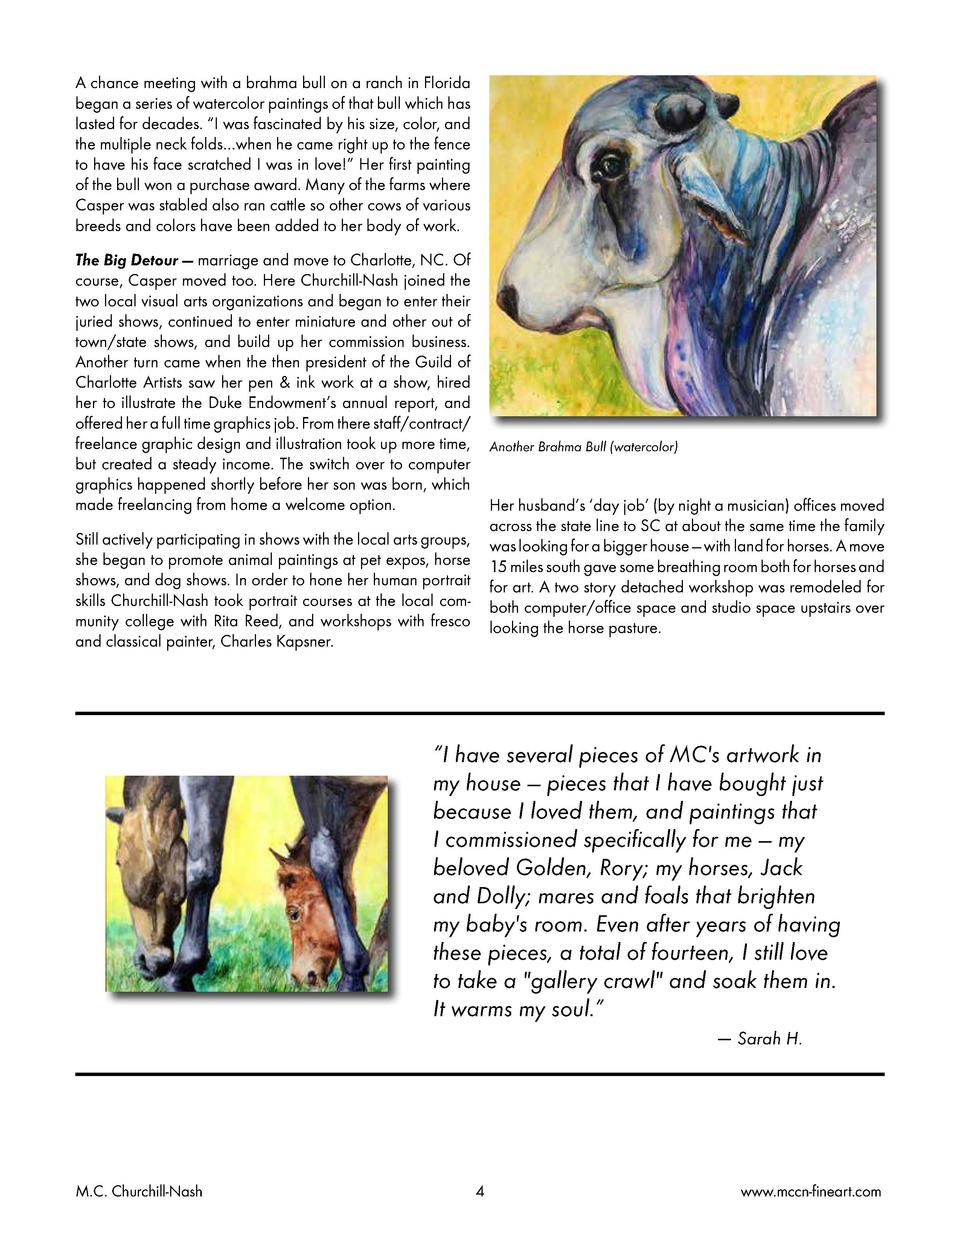 A chance meeting with a brahma bull on a ranch in Florida began a series of watercolor paintings of that bull which has la...